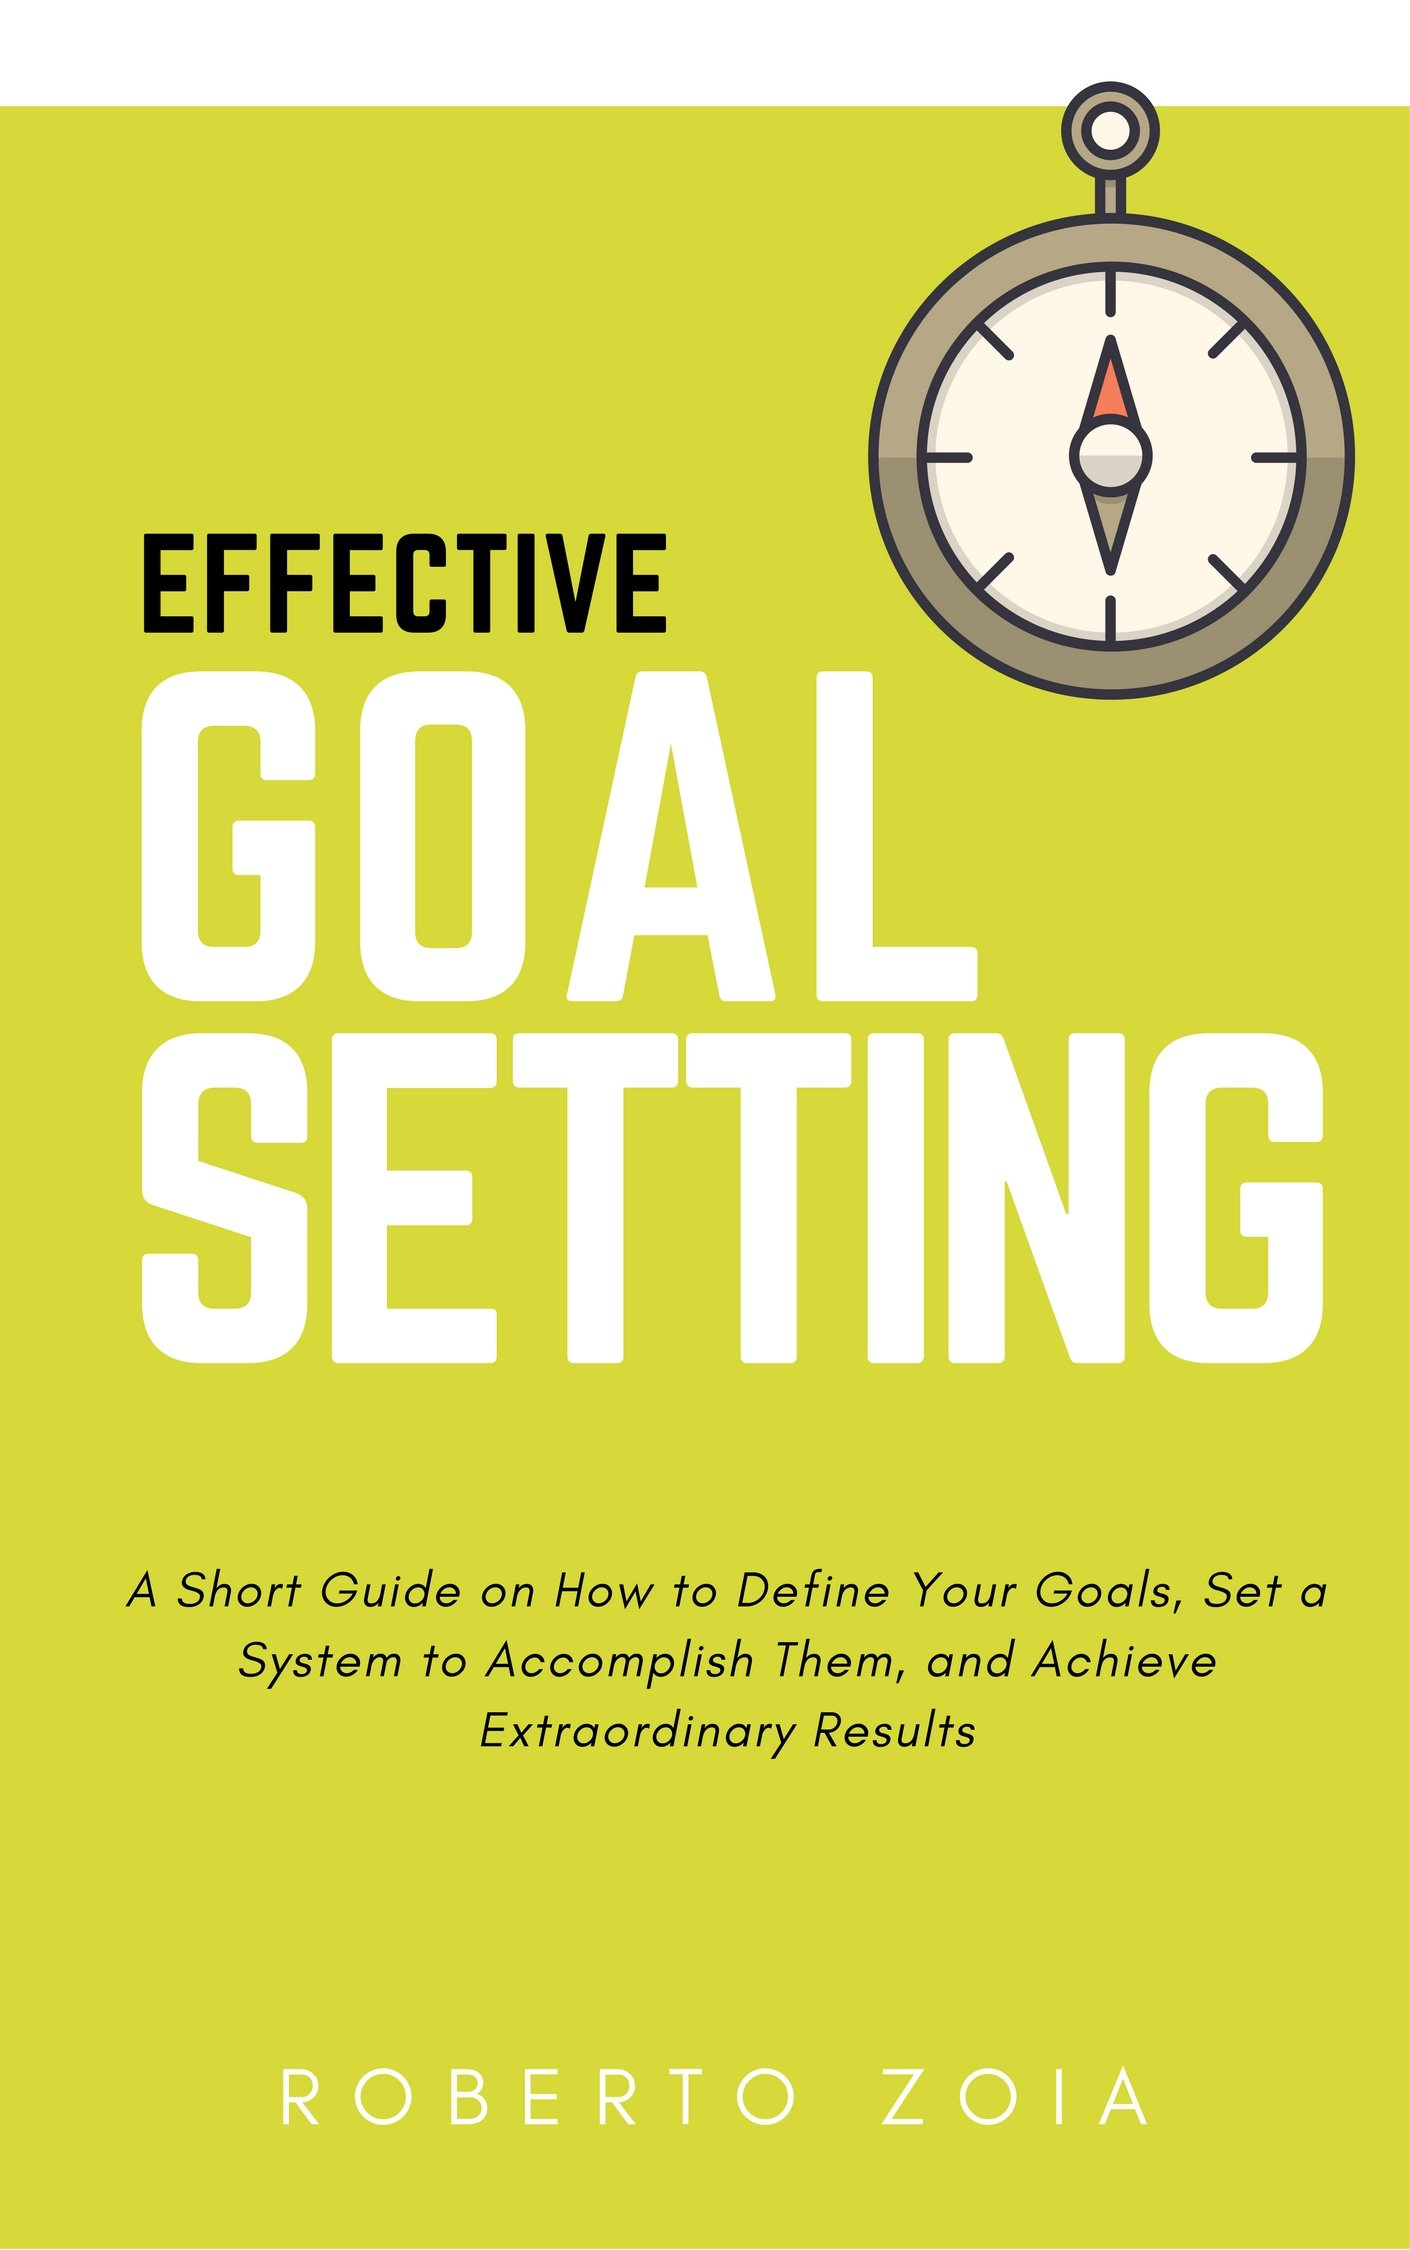 EFFECTIVE GOAL SETTING: A Short Guide on How to Define Your Goals, Set a System to Accomplish Them, and Achieve Extraordinary Results.